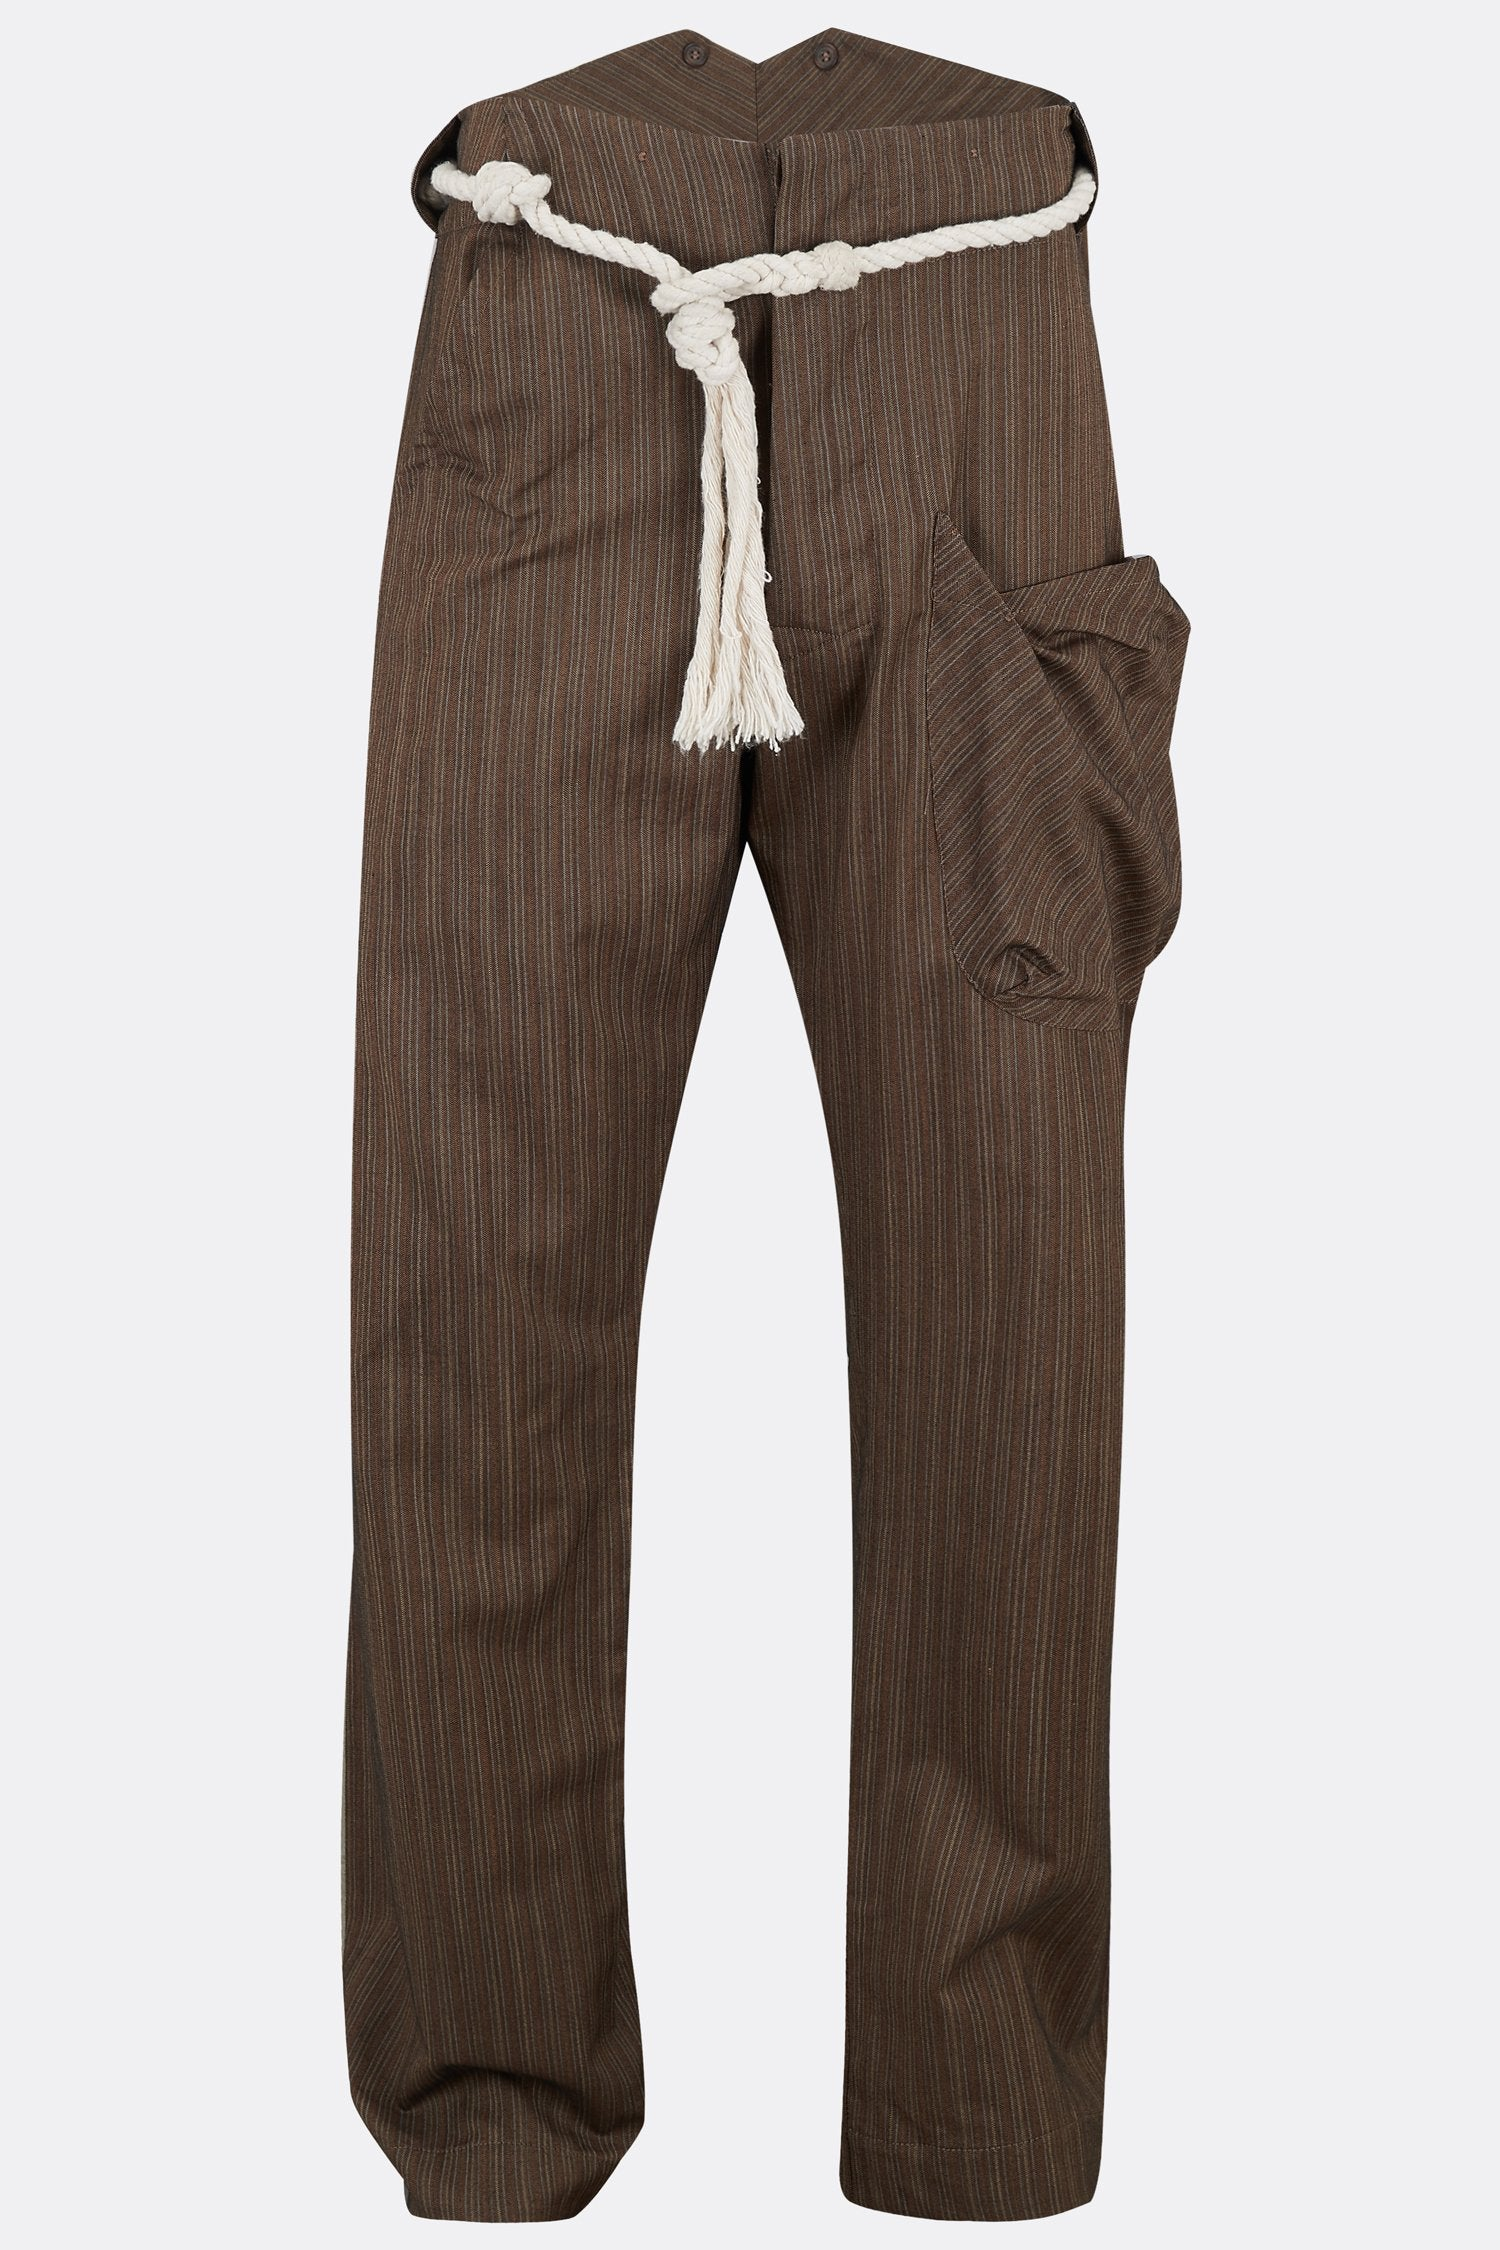 NAPPER TROUSERS IN HERRINGBONE STRIPE BROWN-menswear-A Child Of The Jago